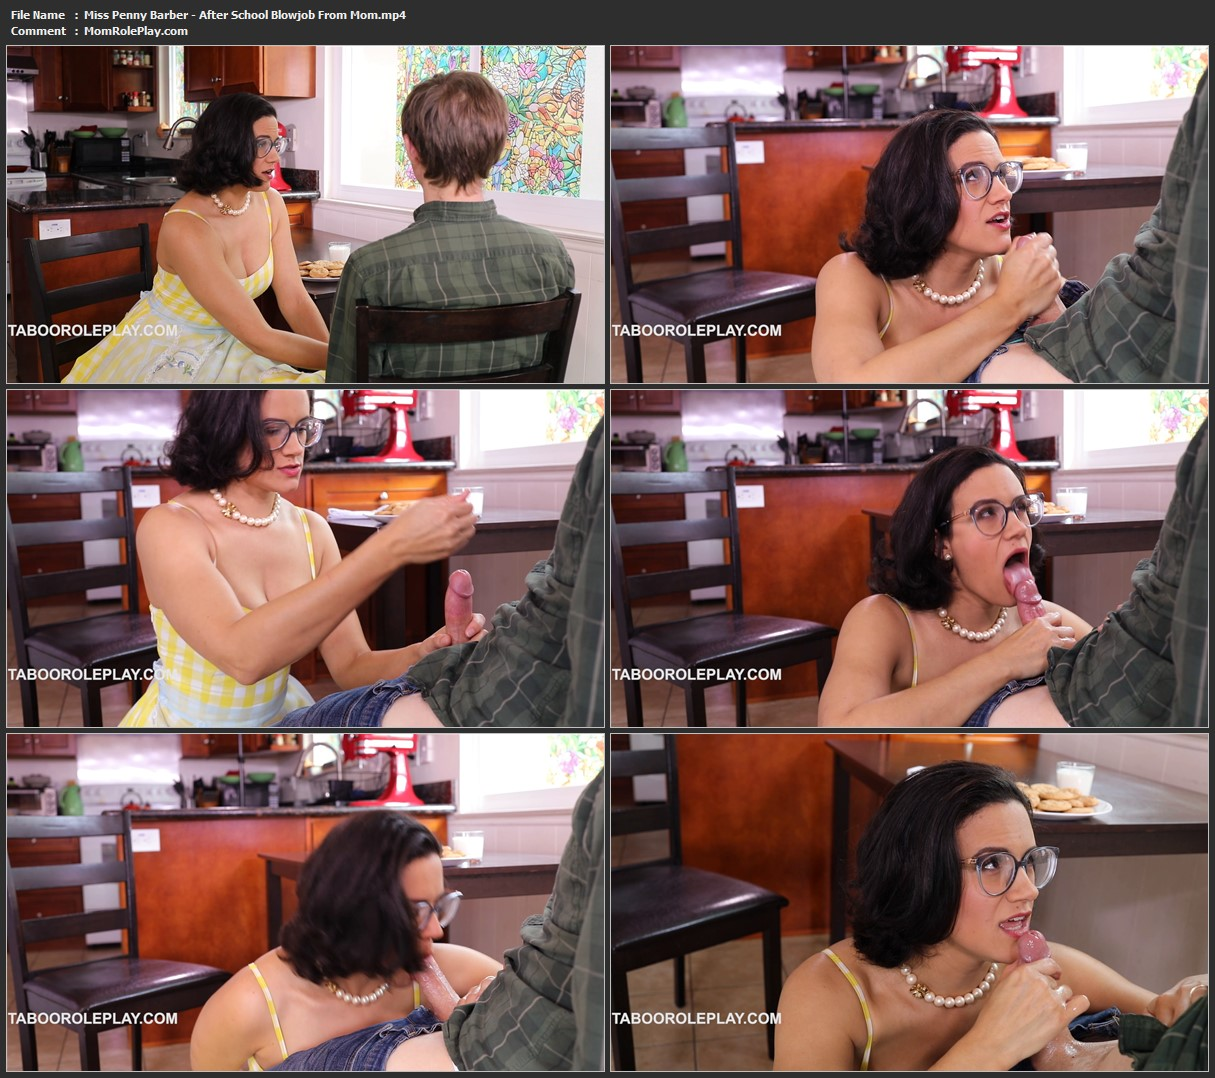 Miss Penny Barber - After School Blowjob From Mom (HD MP4)